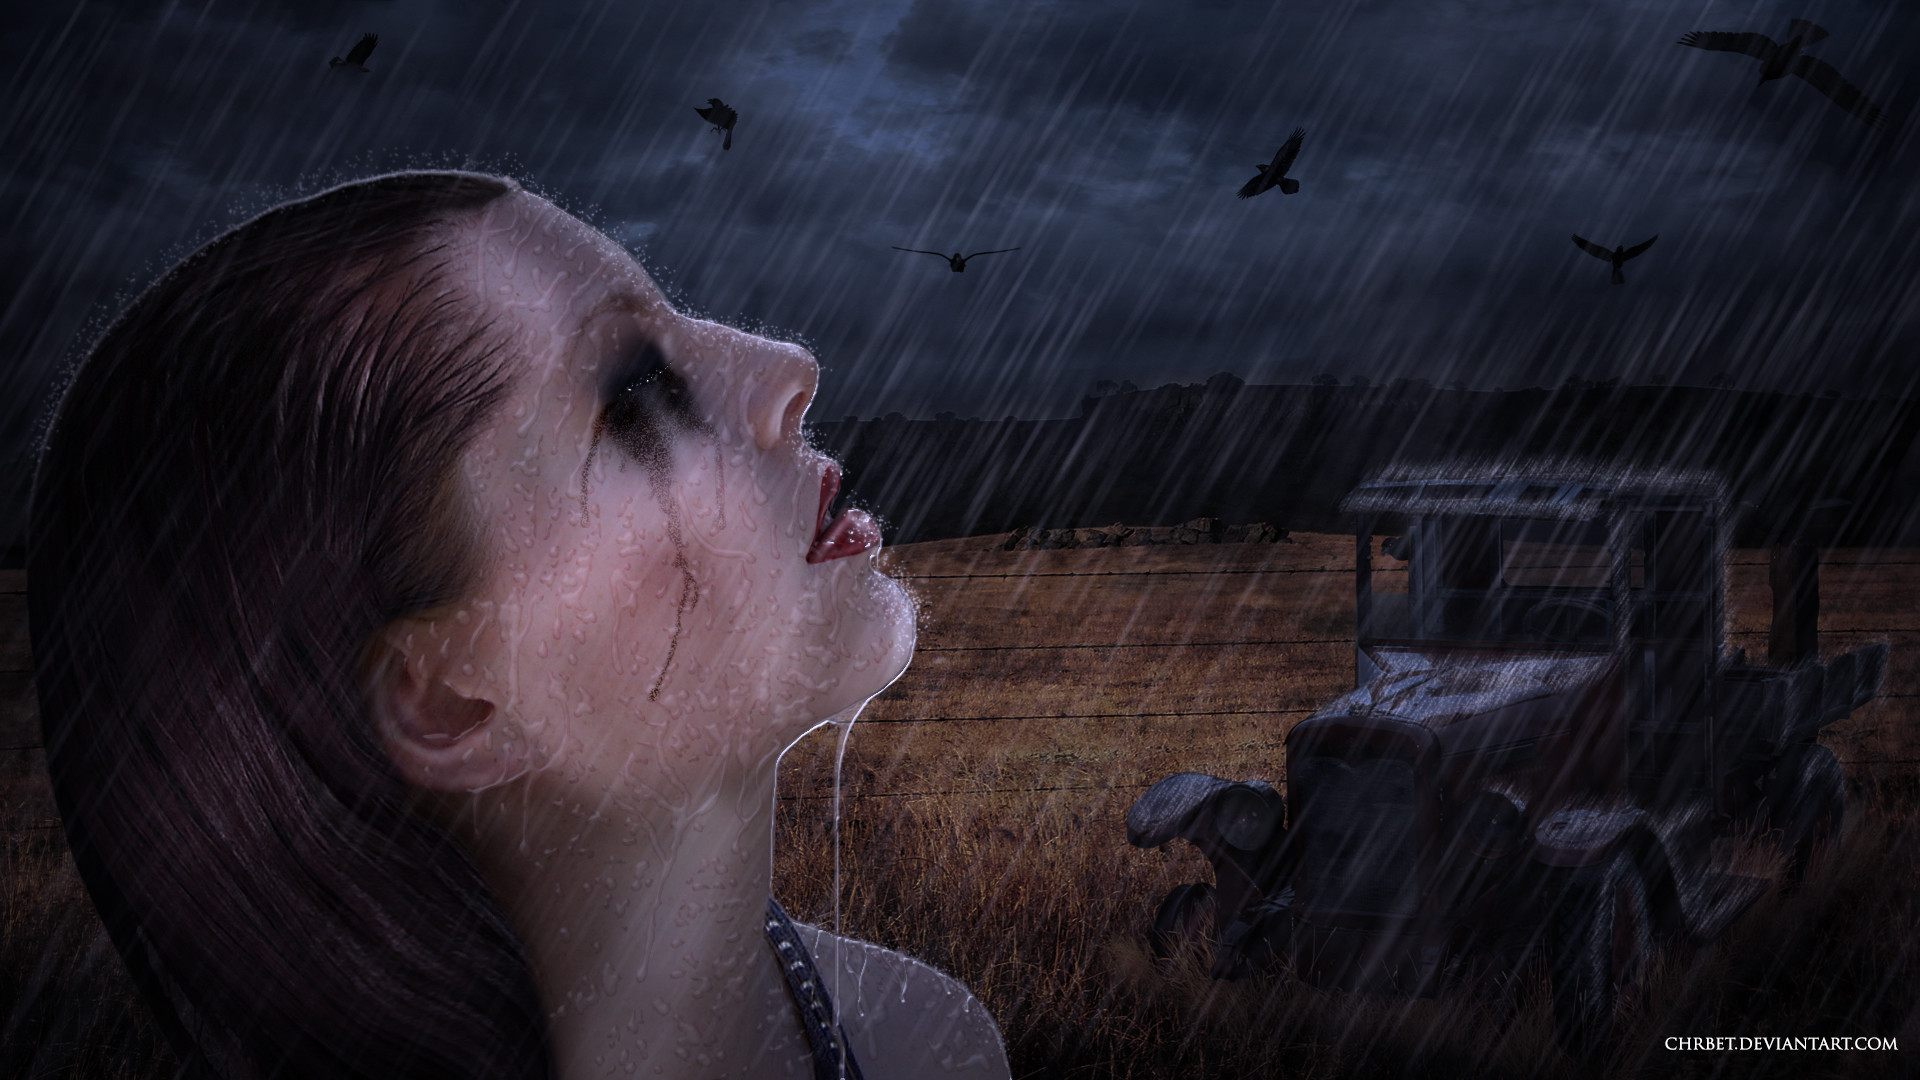 Crying girl in rainy day wallpaper from Dark wallpapers